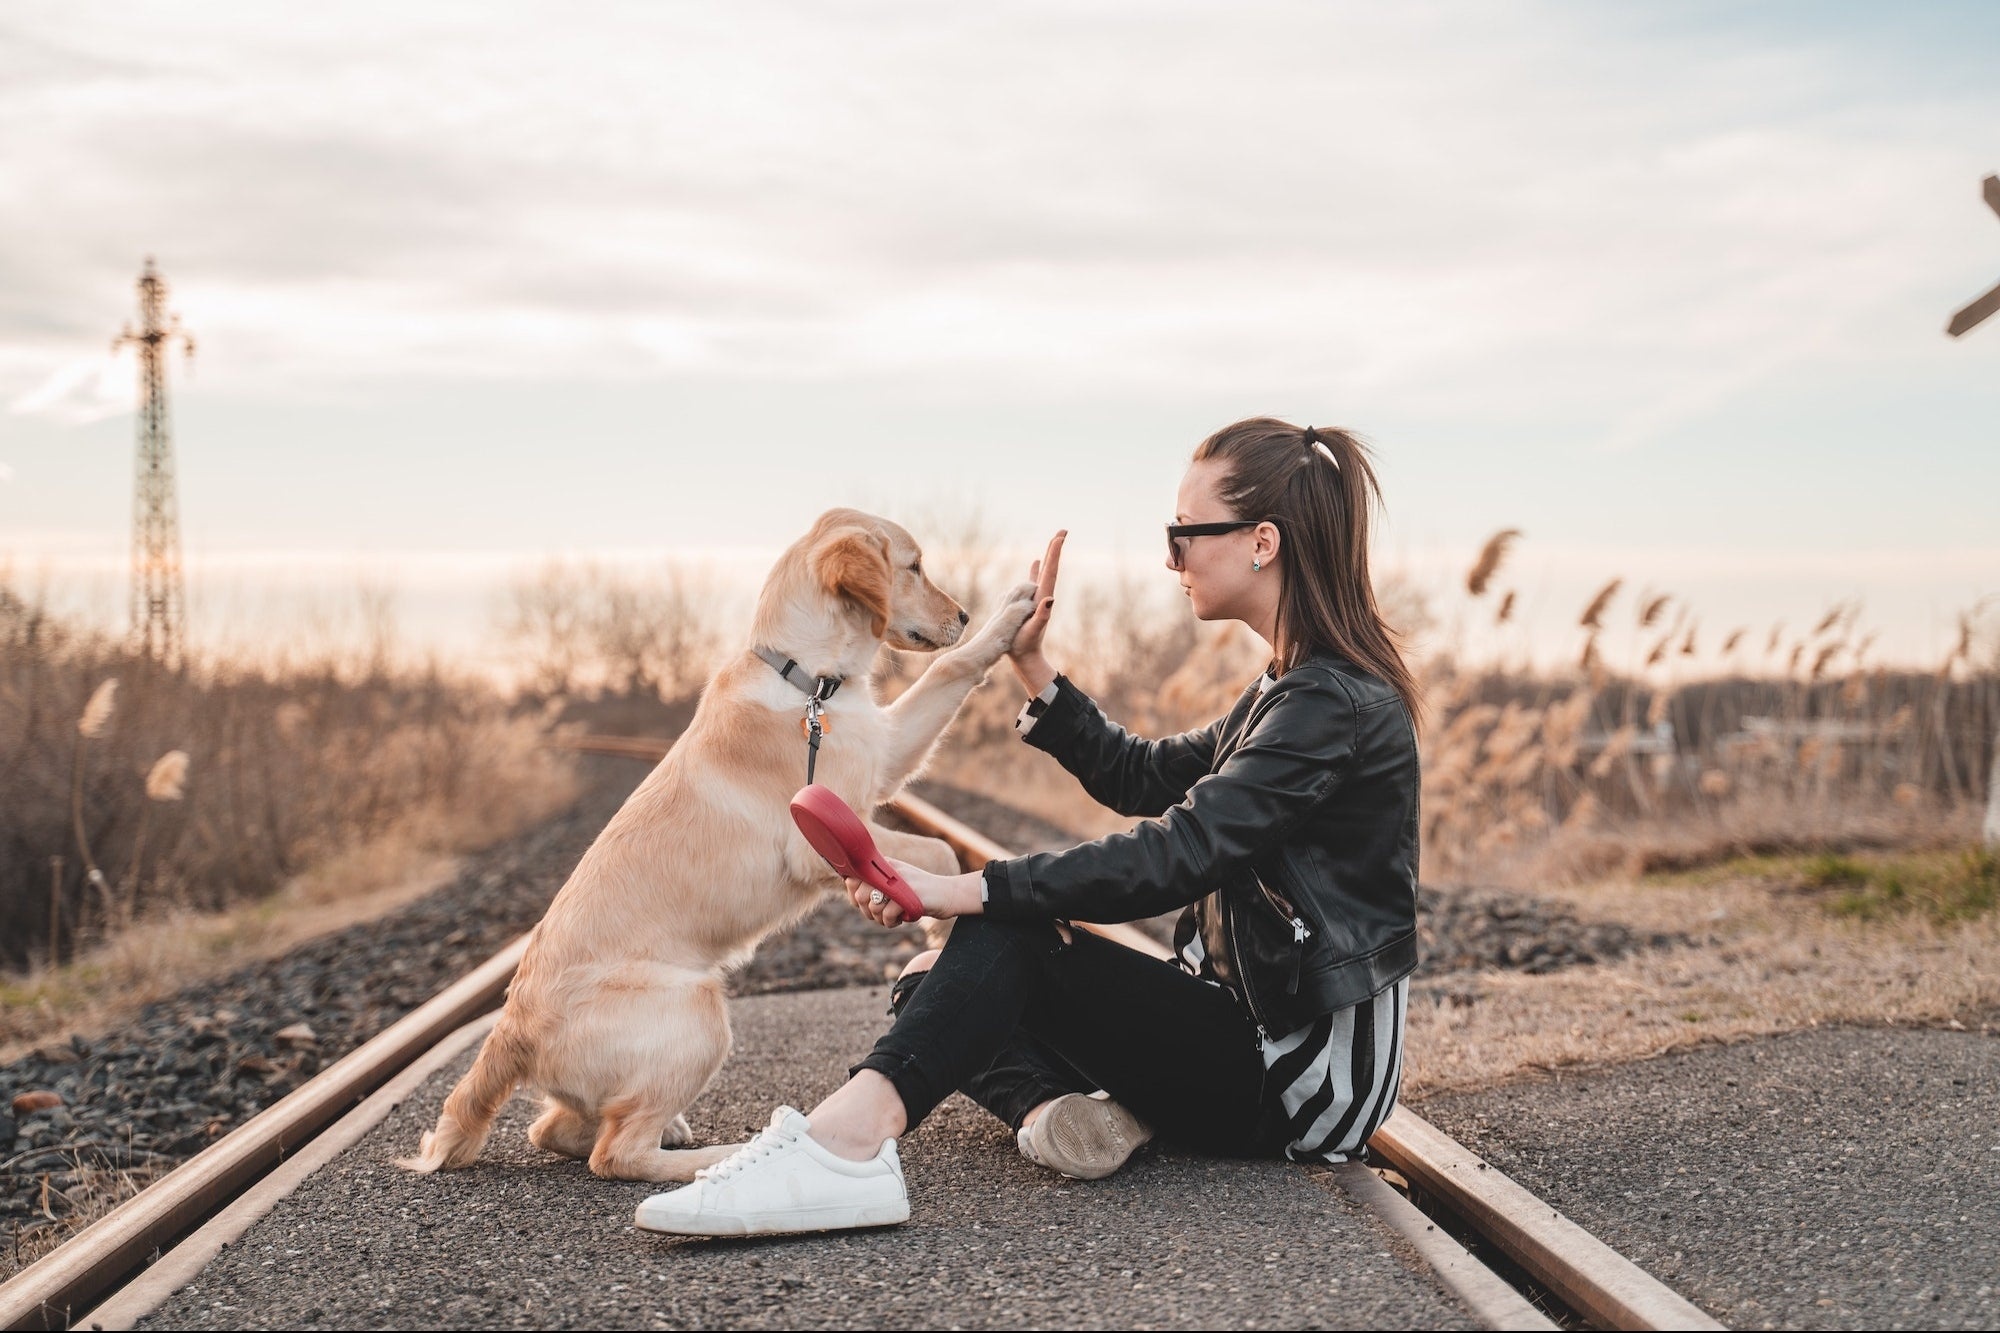 A Well-Trained Dog Can be an Entrepreneur's Best Friend